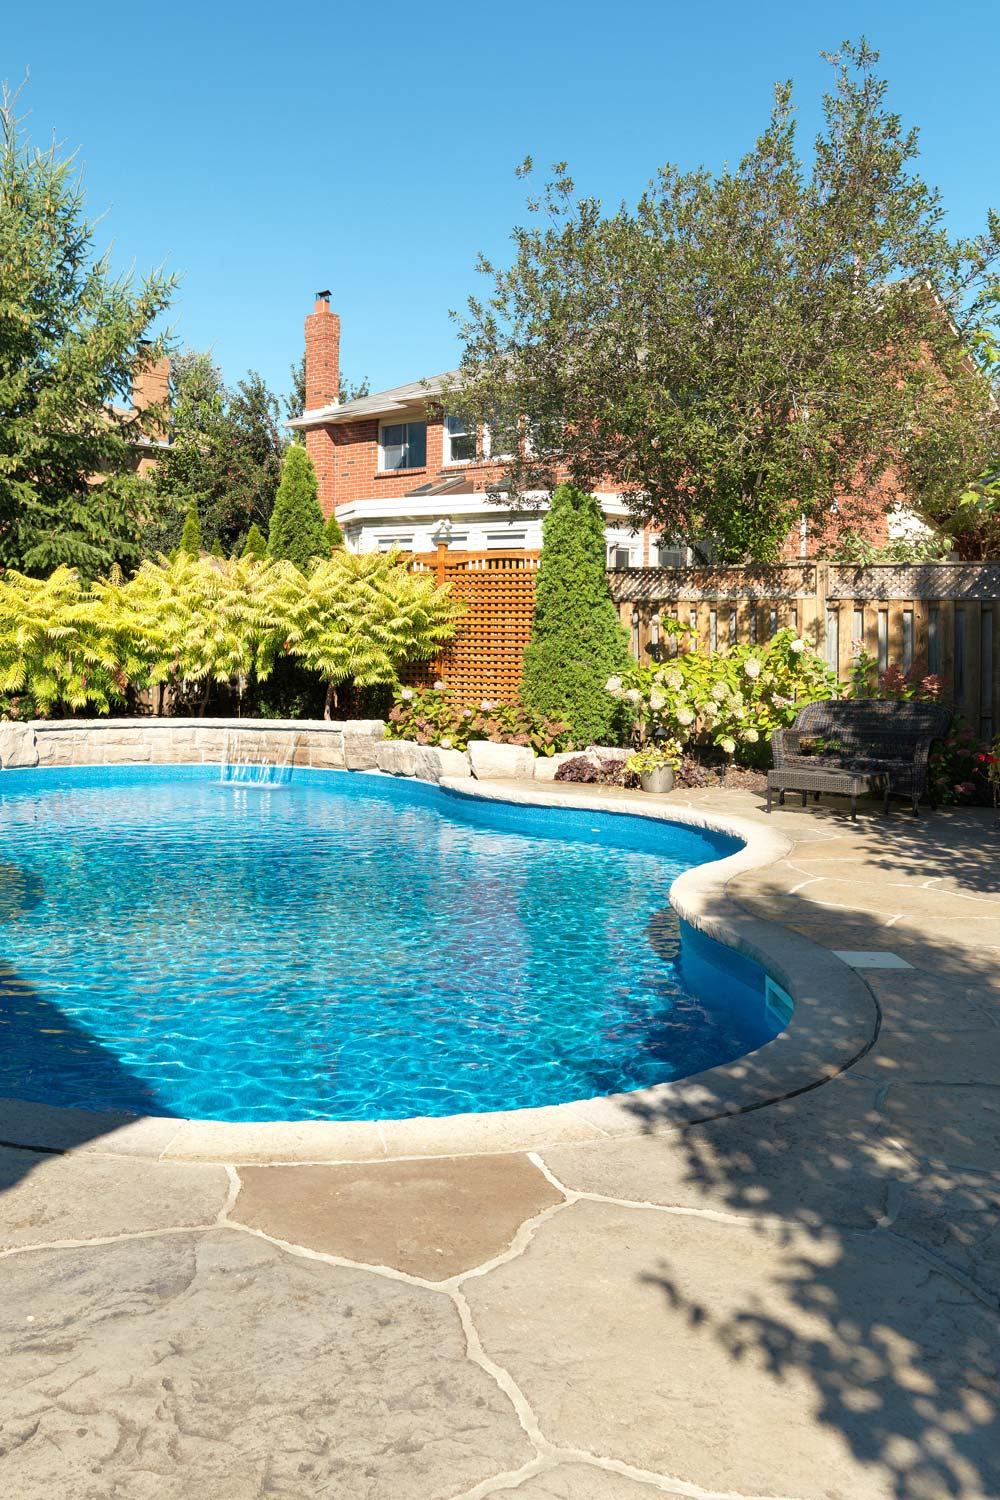 pool decks, patios and driveways are among the most common surfaces where stamped concrete is used